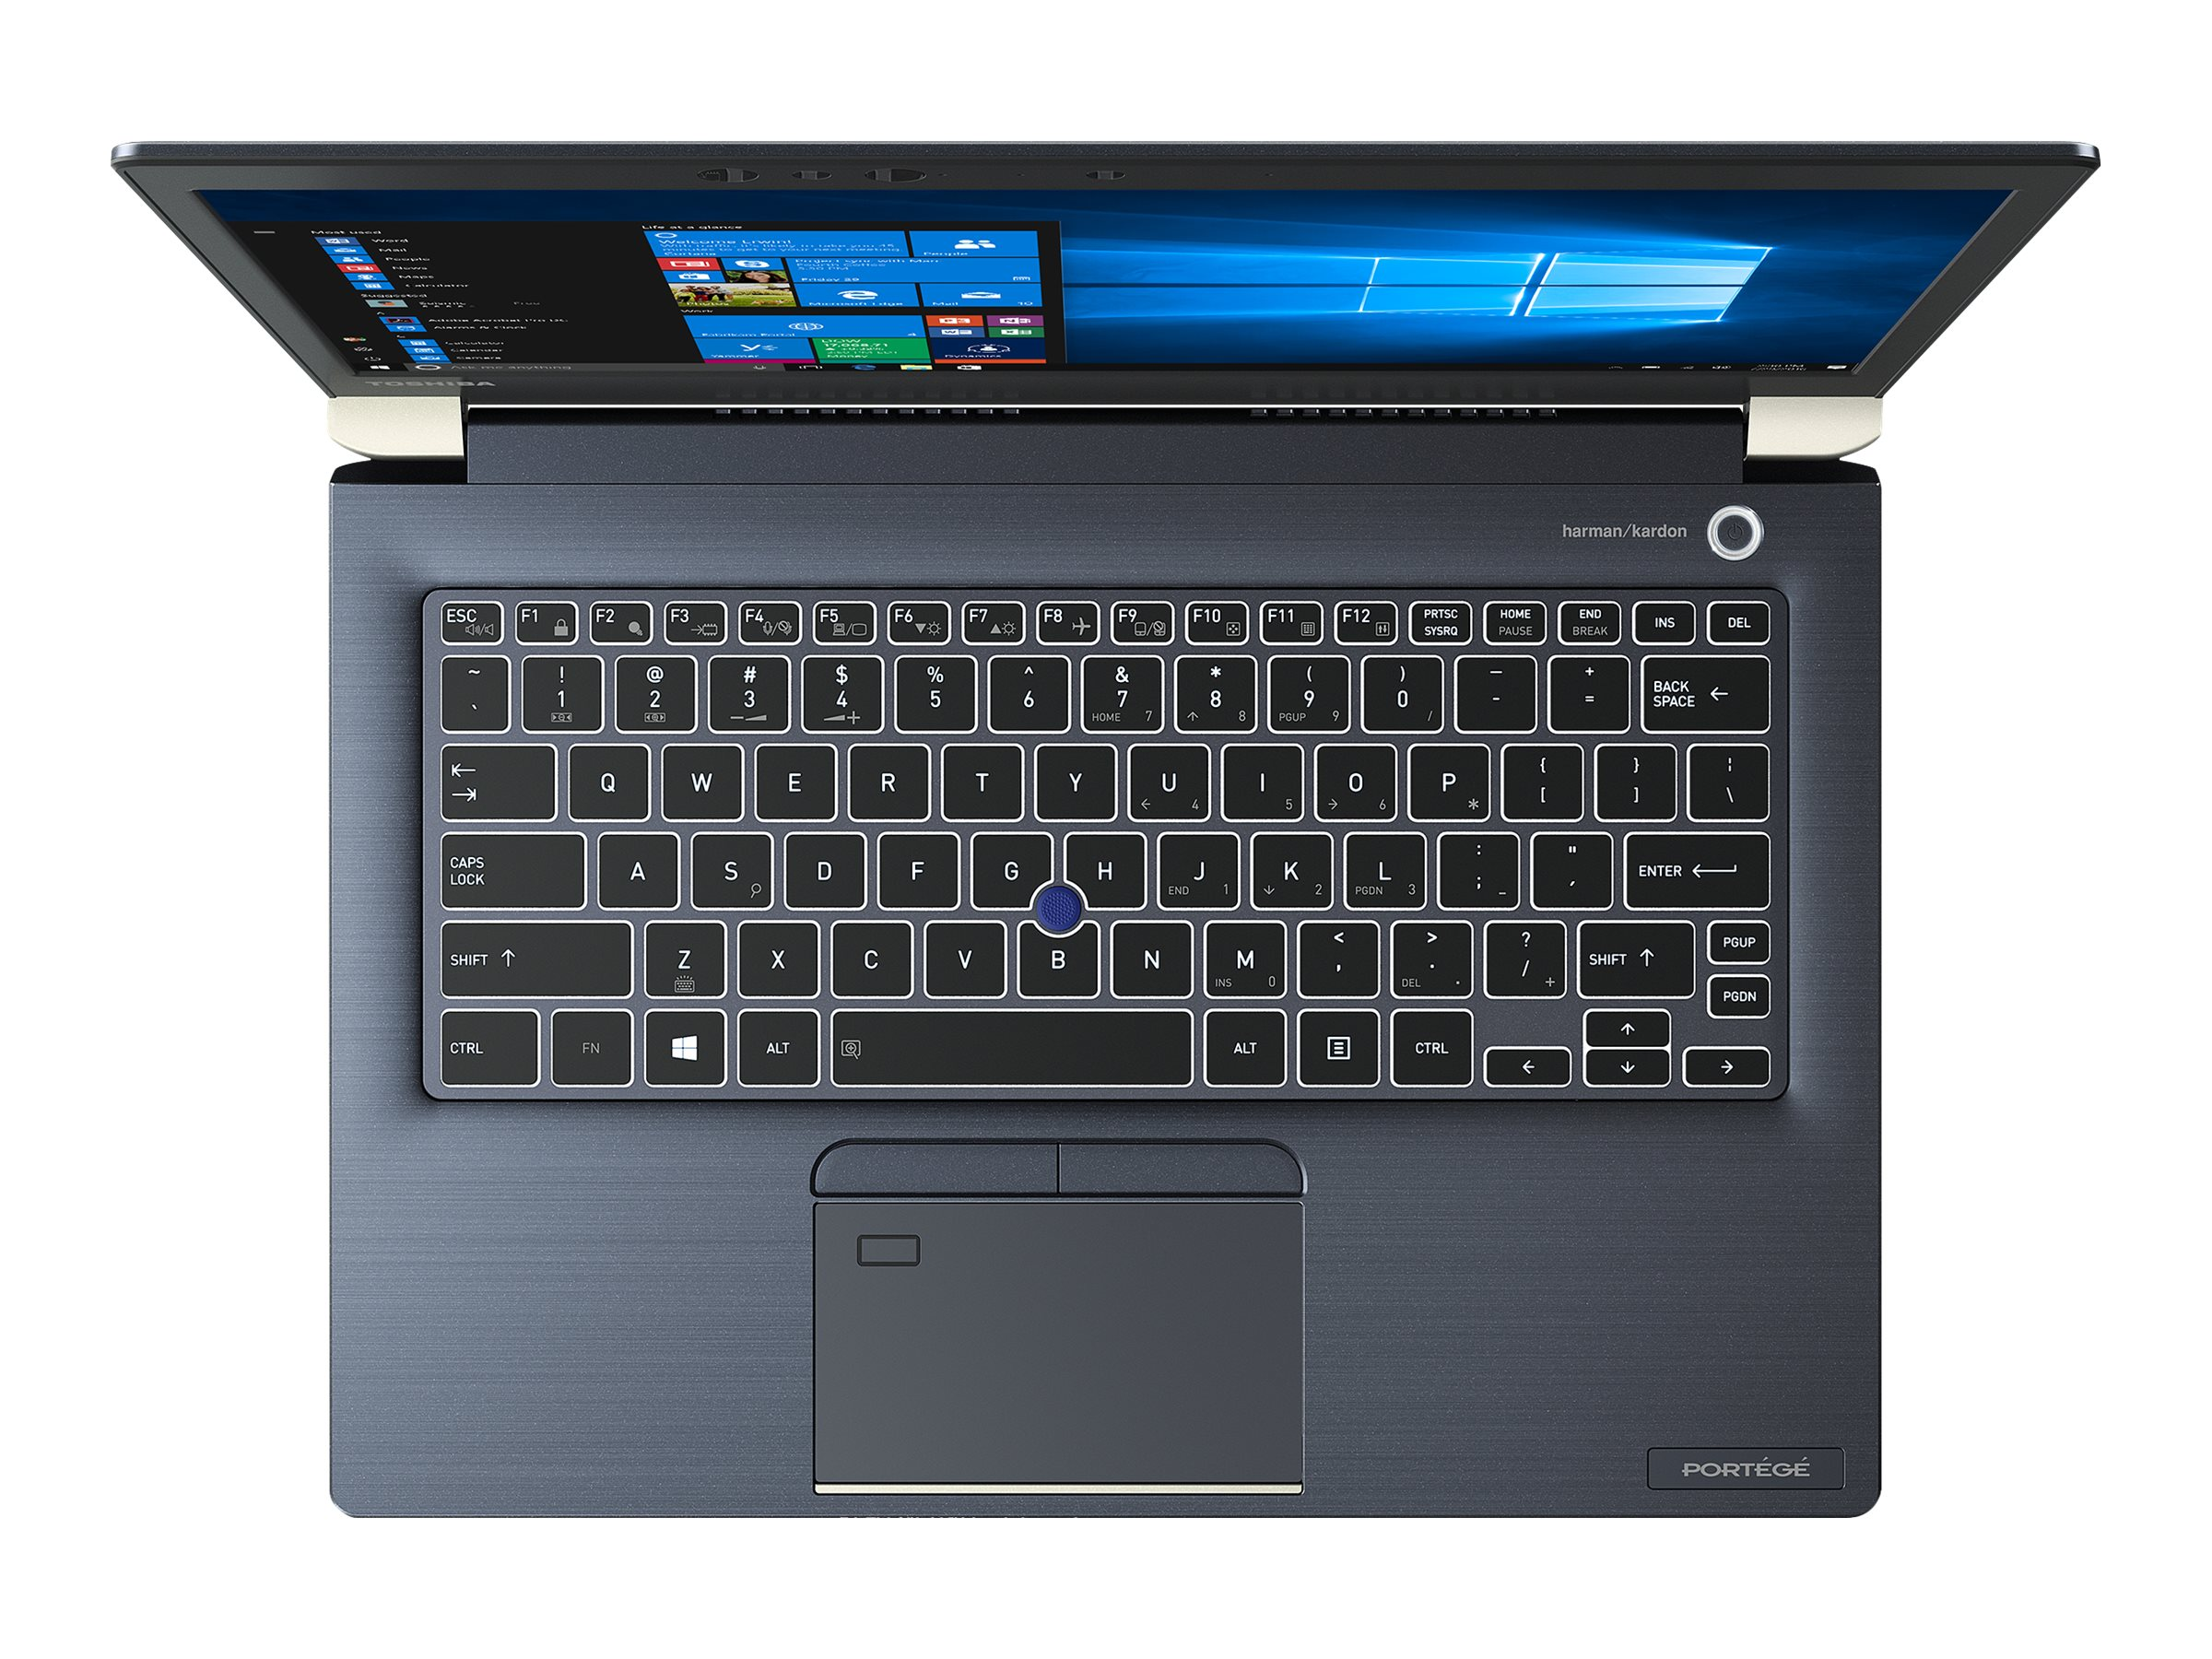 Buy Toshiba Portege X30 E1346 Core I7 19ghz 16gb 512gb 13 W10p At Flashdisk 2 Gb Connection Public Sector Solutions